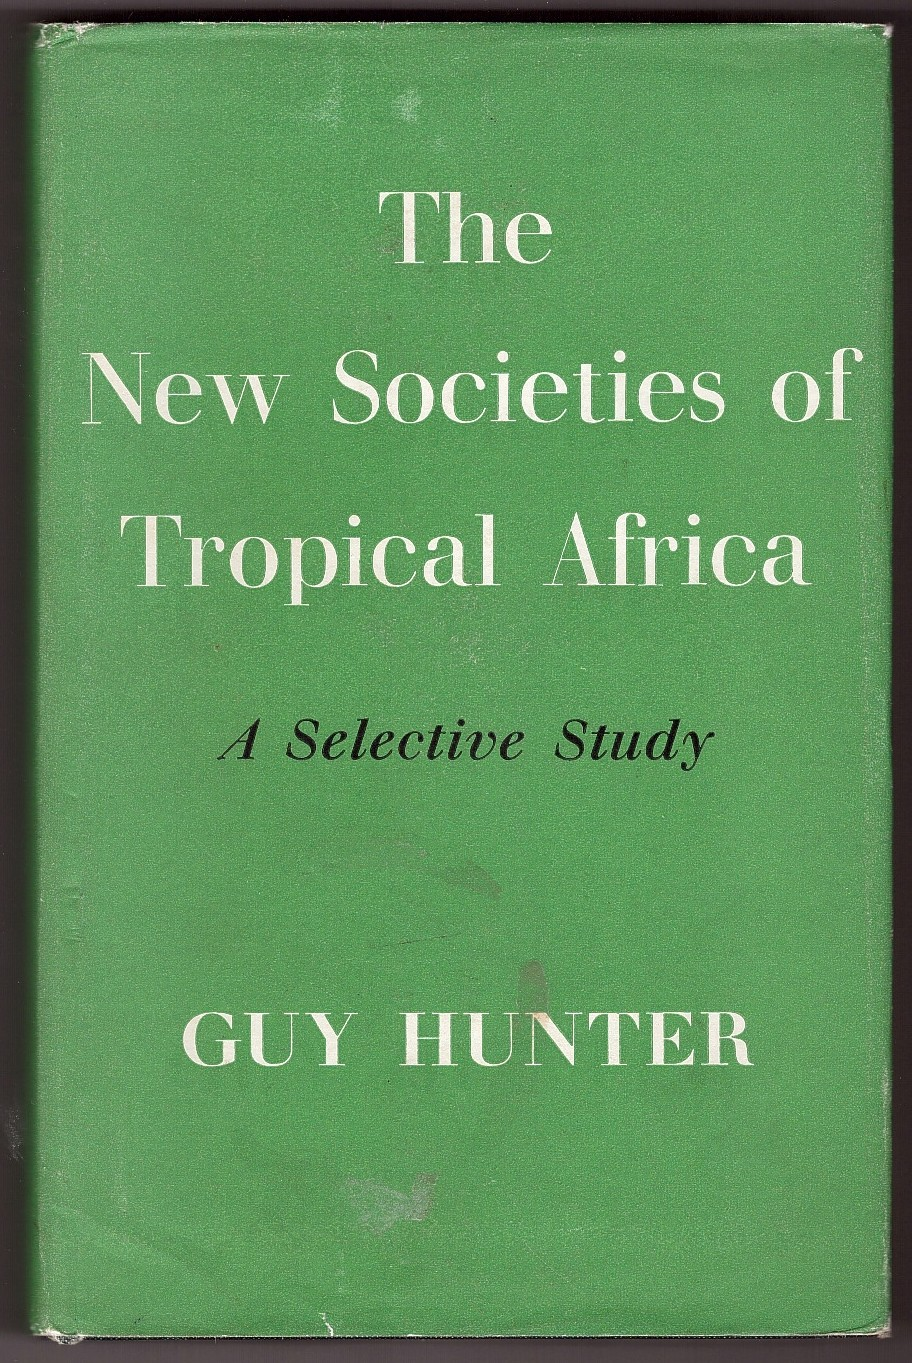 Image for The New Societies of Tropical Africa A Selective Study